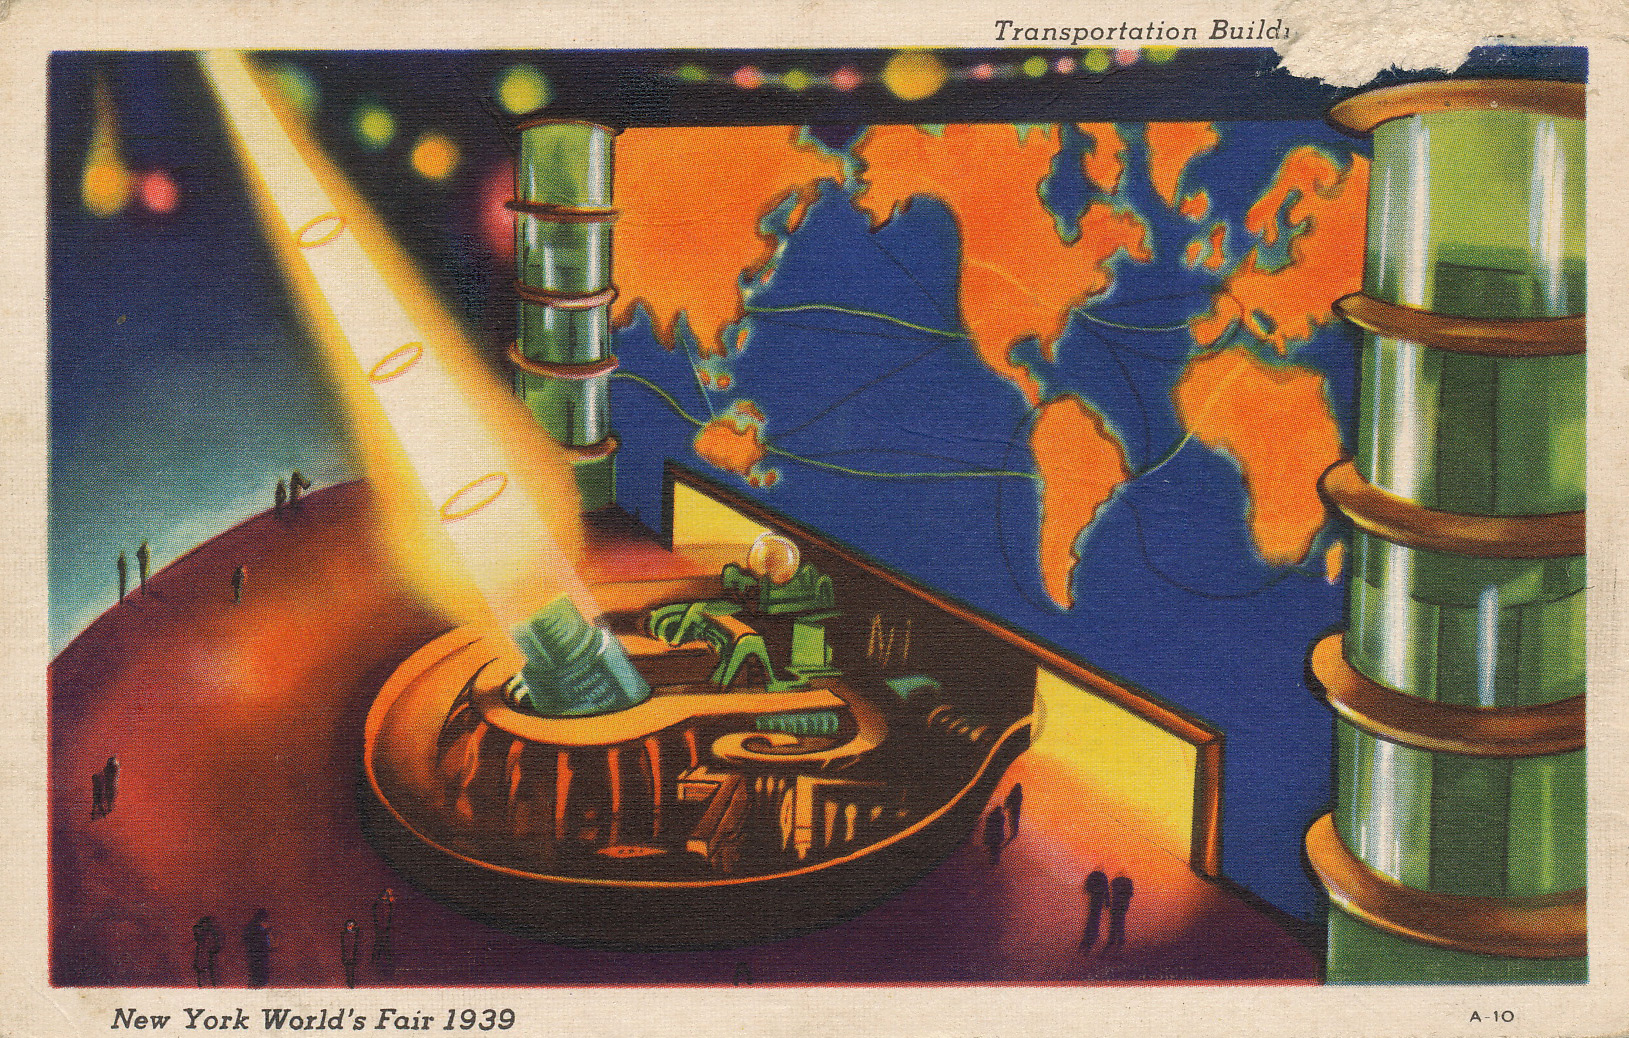 http://jrandomimage.com/images/worlds-fair-1939-transportation.jpg